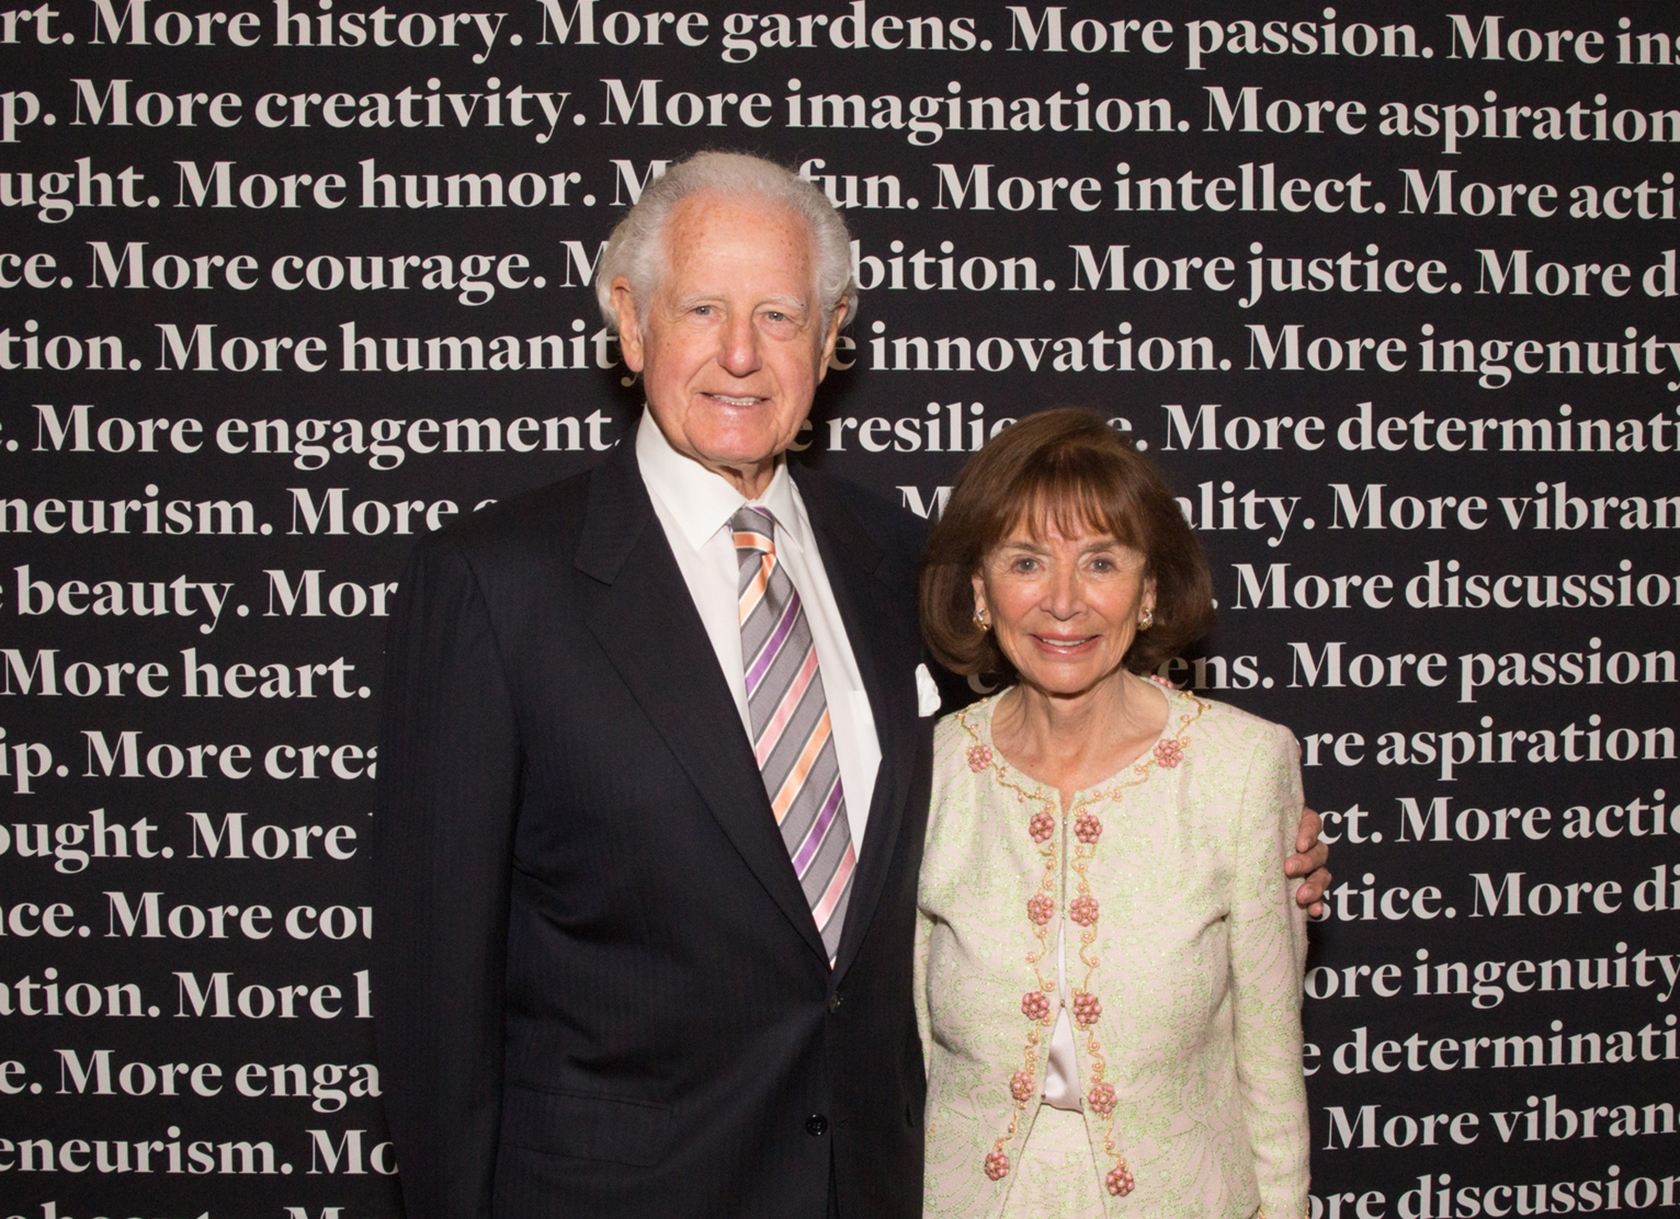 A white man and woman posing together in professional dress.